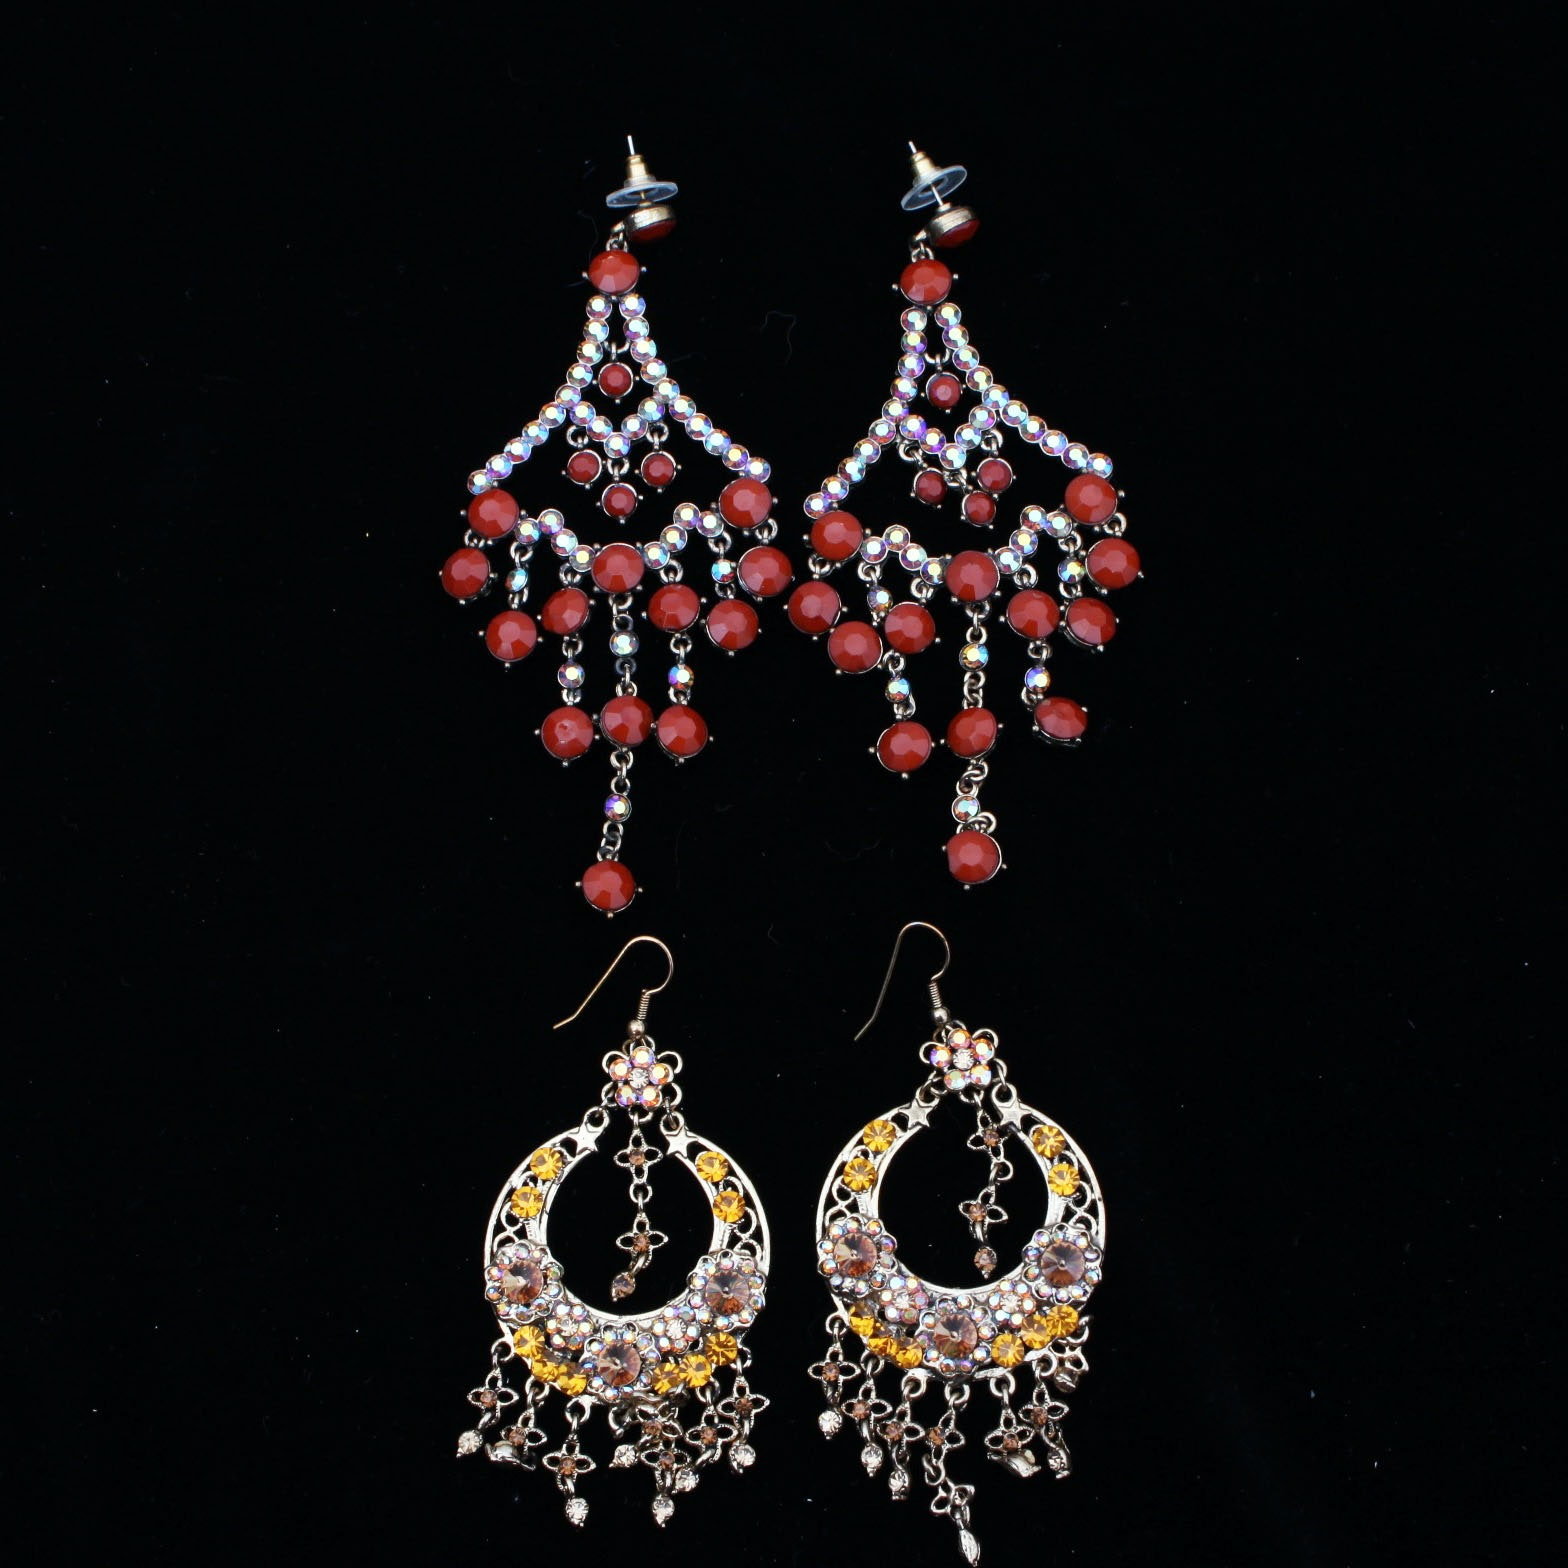 Two Pairs of East Indian Style Earrings